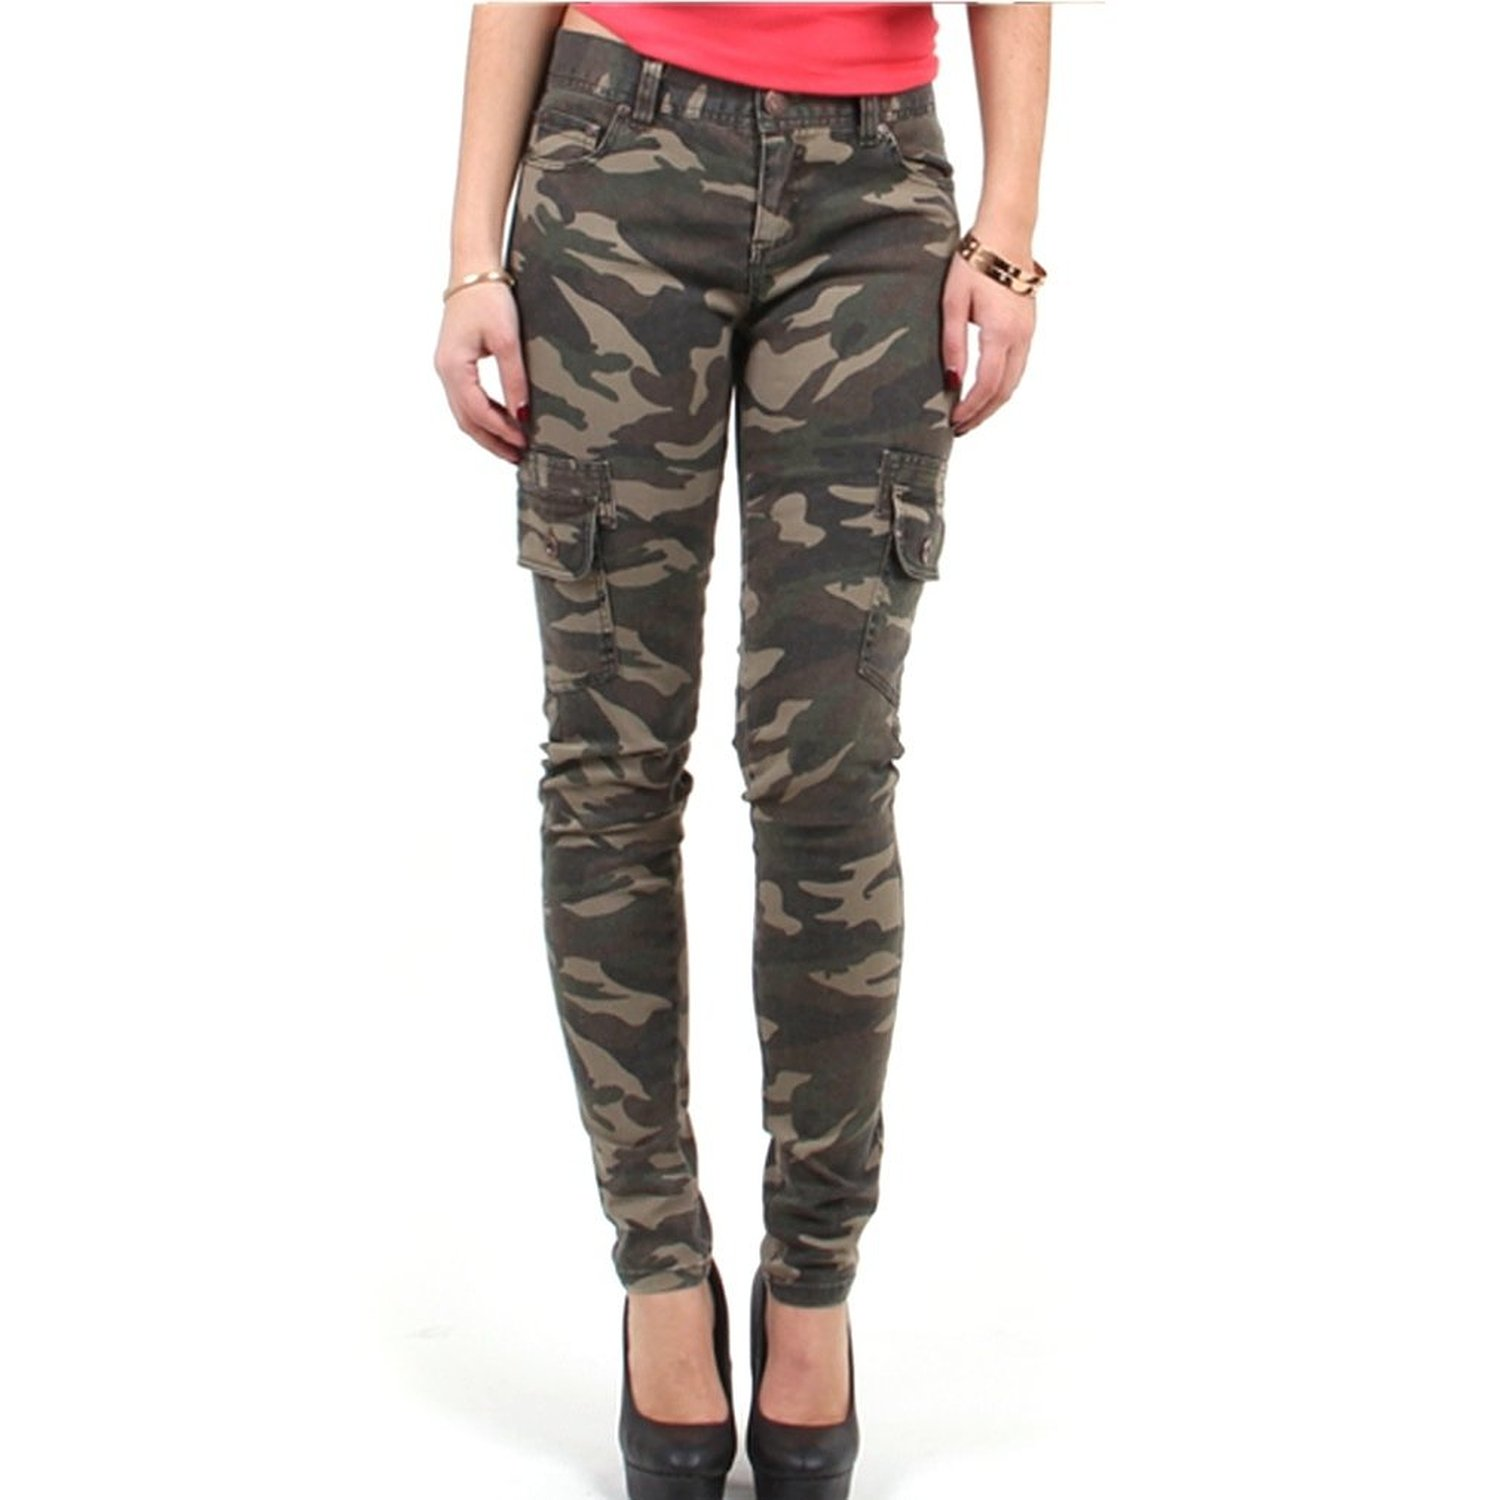 camo pants for women womenu0027s camo army cargo skinny pants (new with tag) at amazon womenu0027s  clothing DQKOGYB